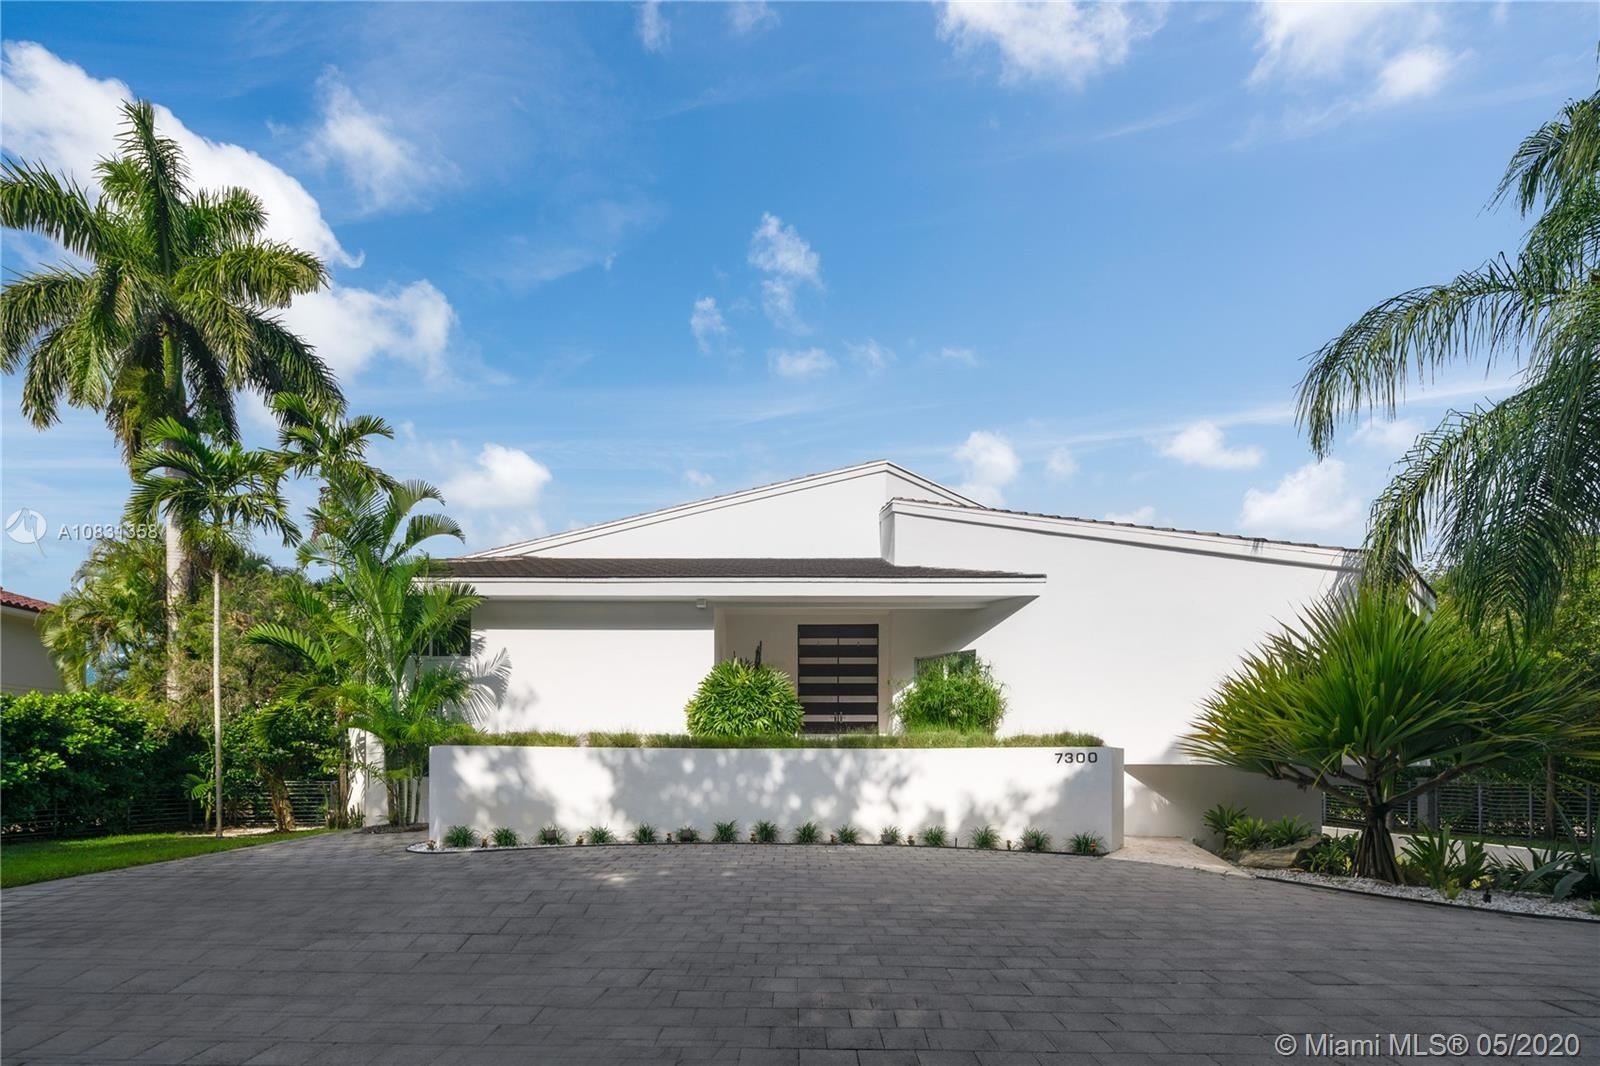 7300 Old Cutler Rd, Coral Gables, FL 33143 - #: A10831358